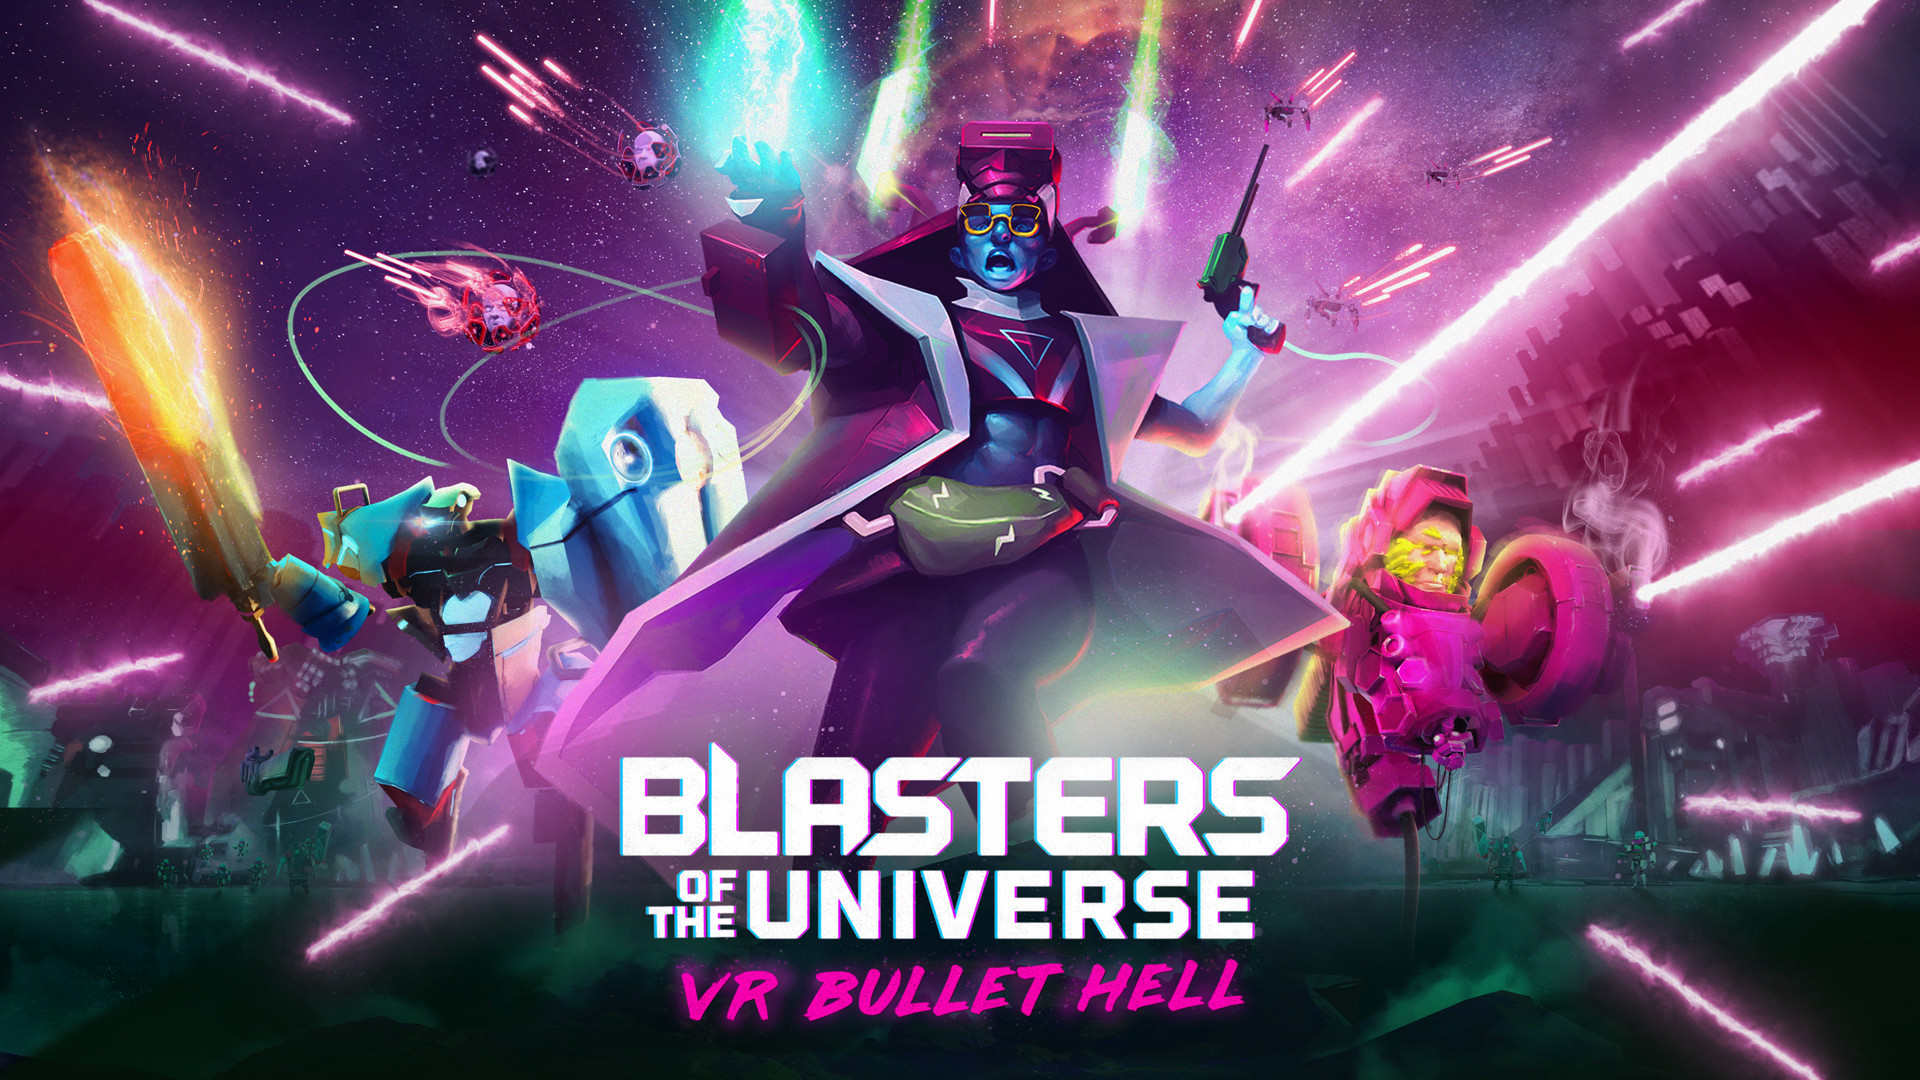 'Blasters of the Universe' Will Keep You On The Edge Of Your Seat